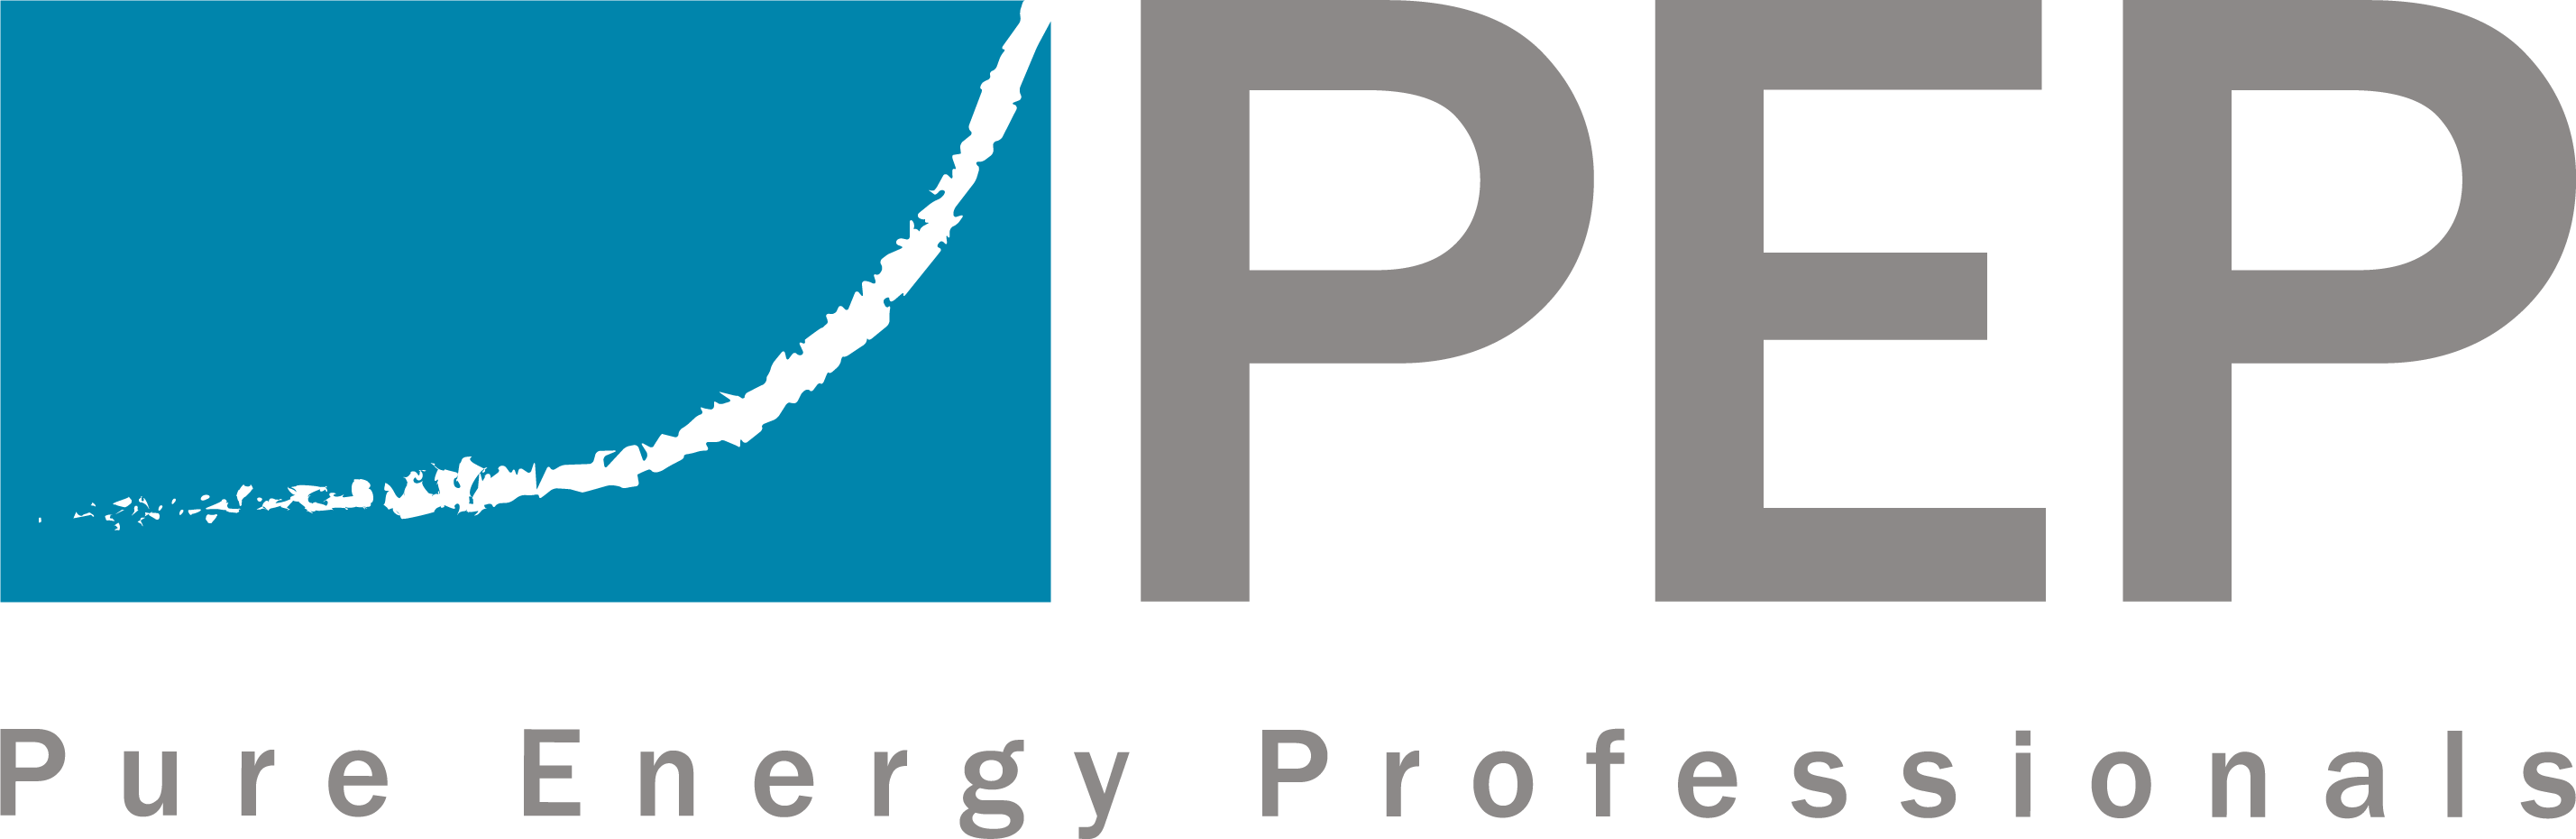 Pure Energy Professionals, Helston, Cornwall